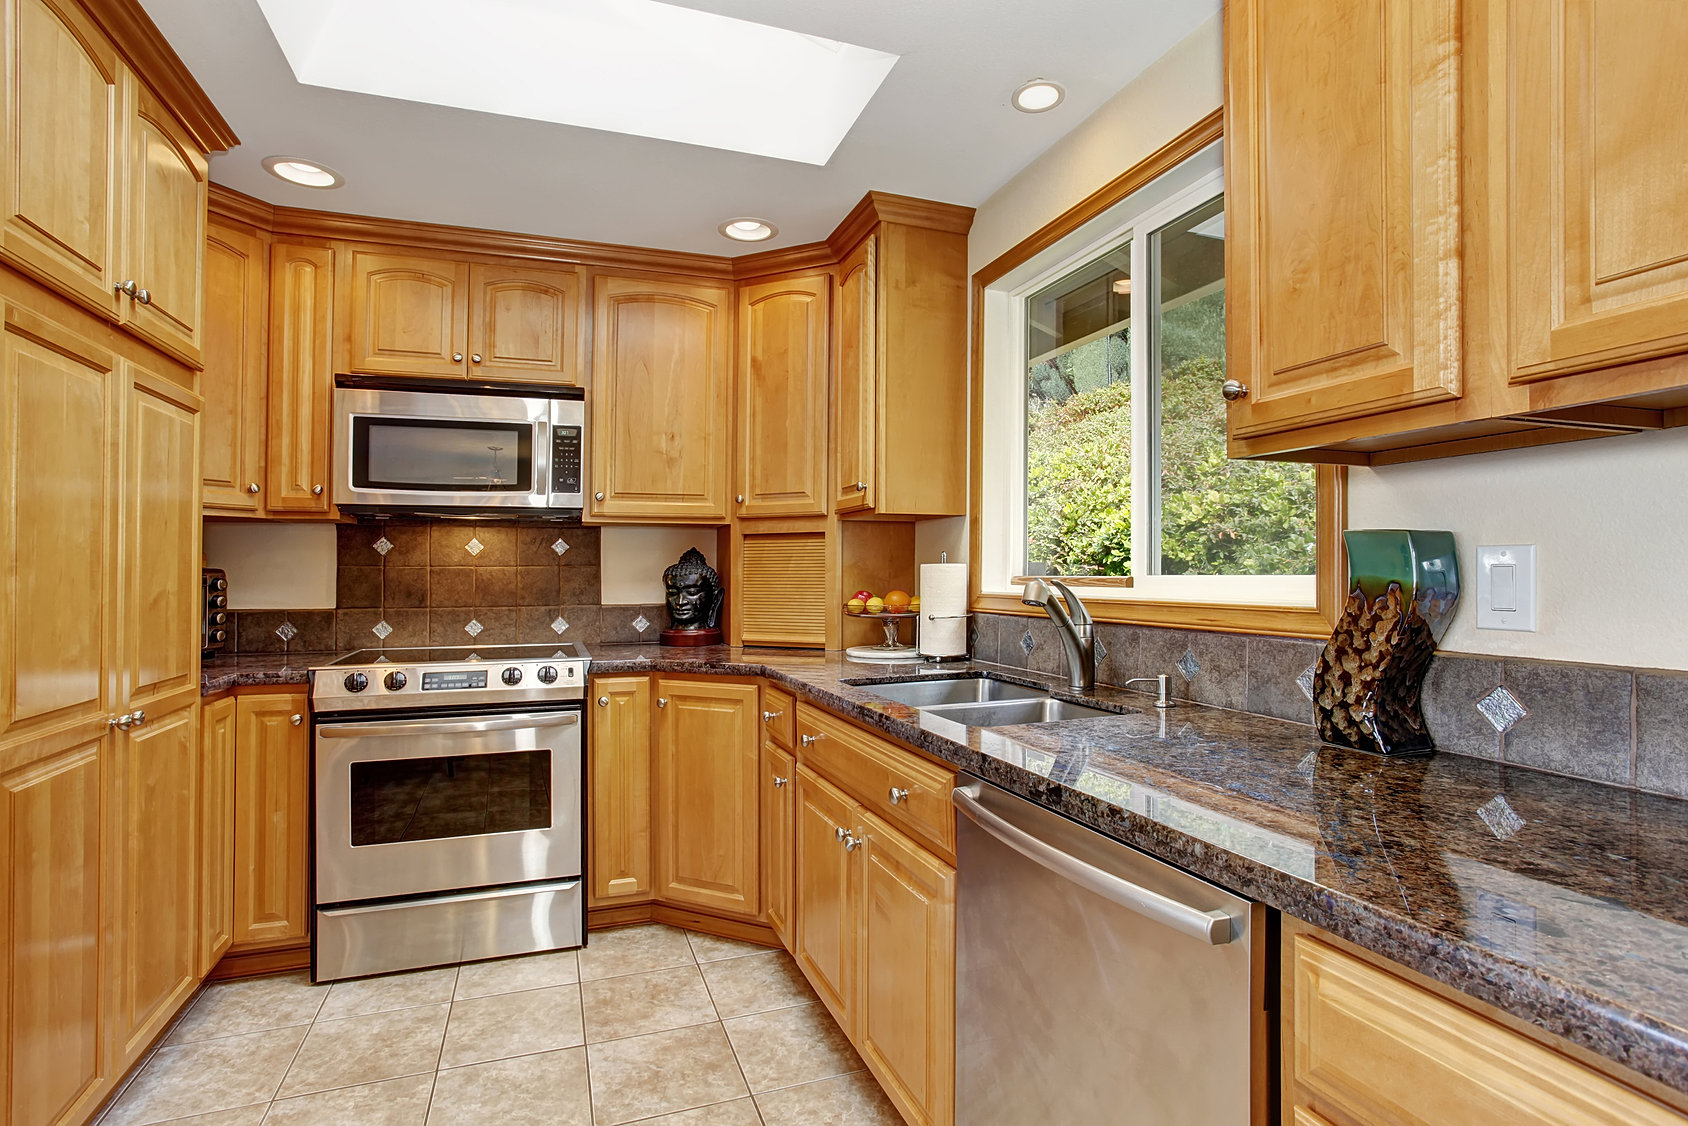 Kitchen Design Rochester Ny Kitchen Remodeling Rochester Ny Cabinets Plus Remodeling